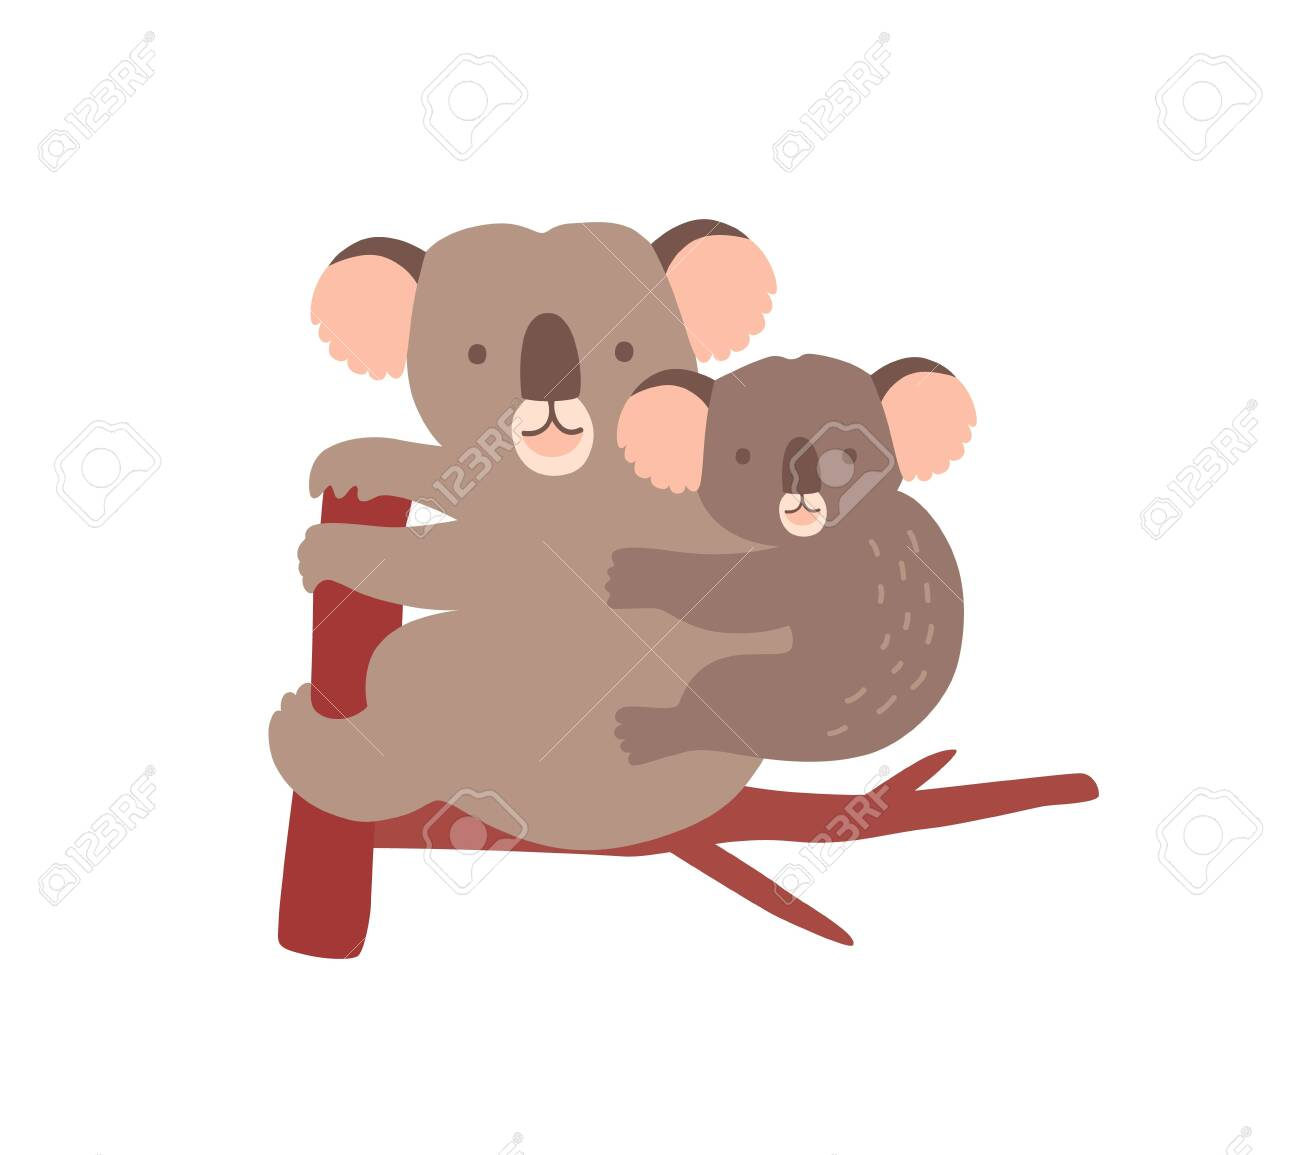 Koala Hugging Tree Cartoon : Valentine koala cartoon heart hug copyspace stock vector.